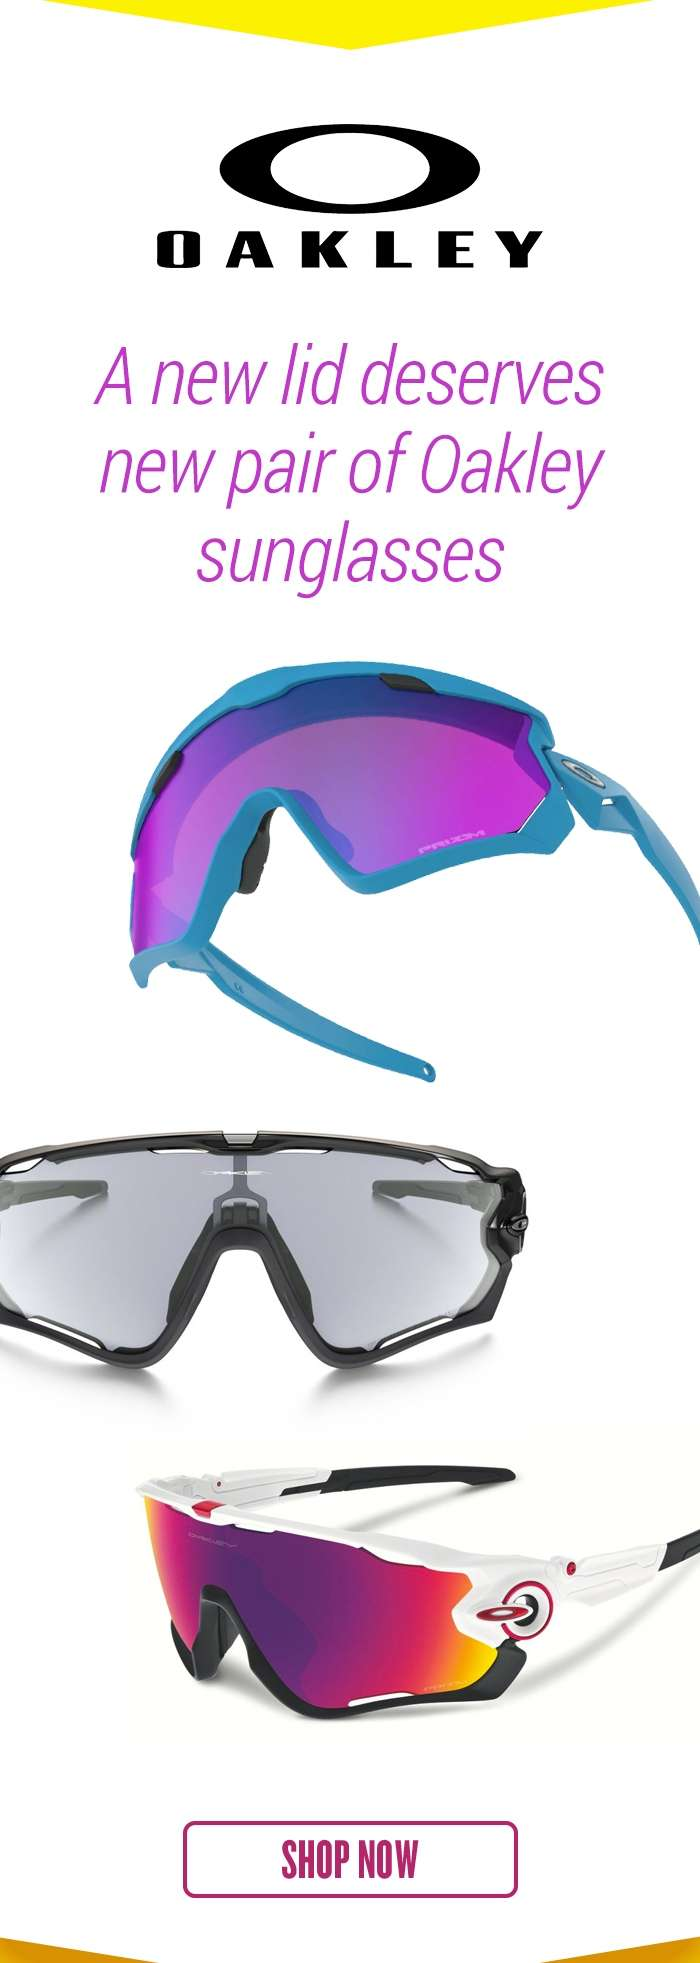 A new lid deserves new pair of Oakley sunglasses